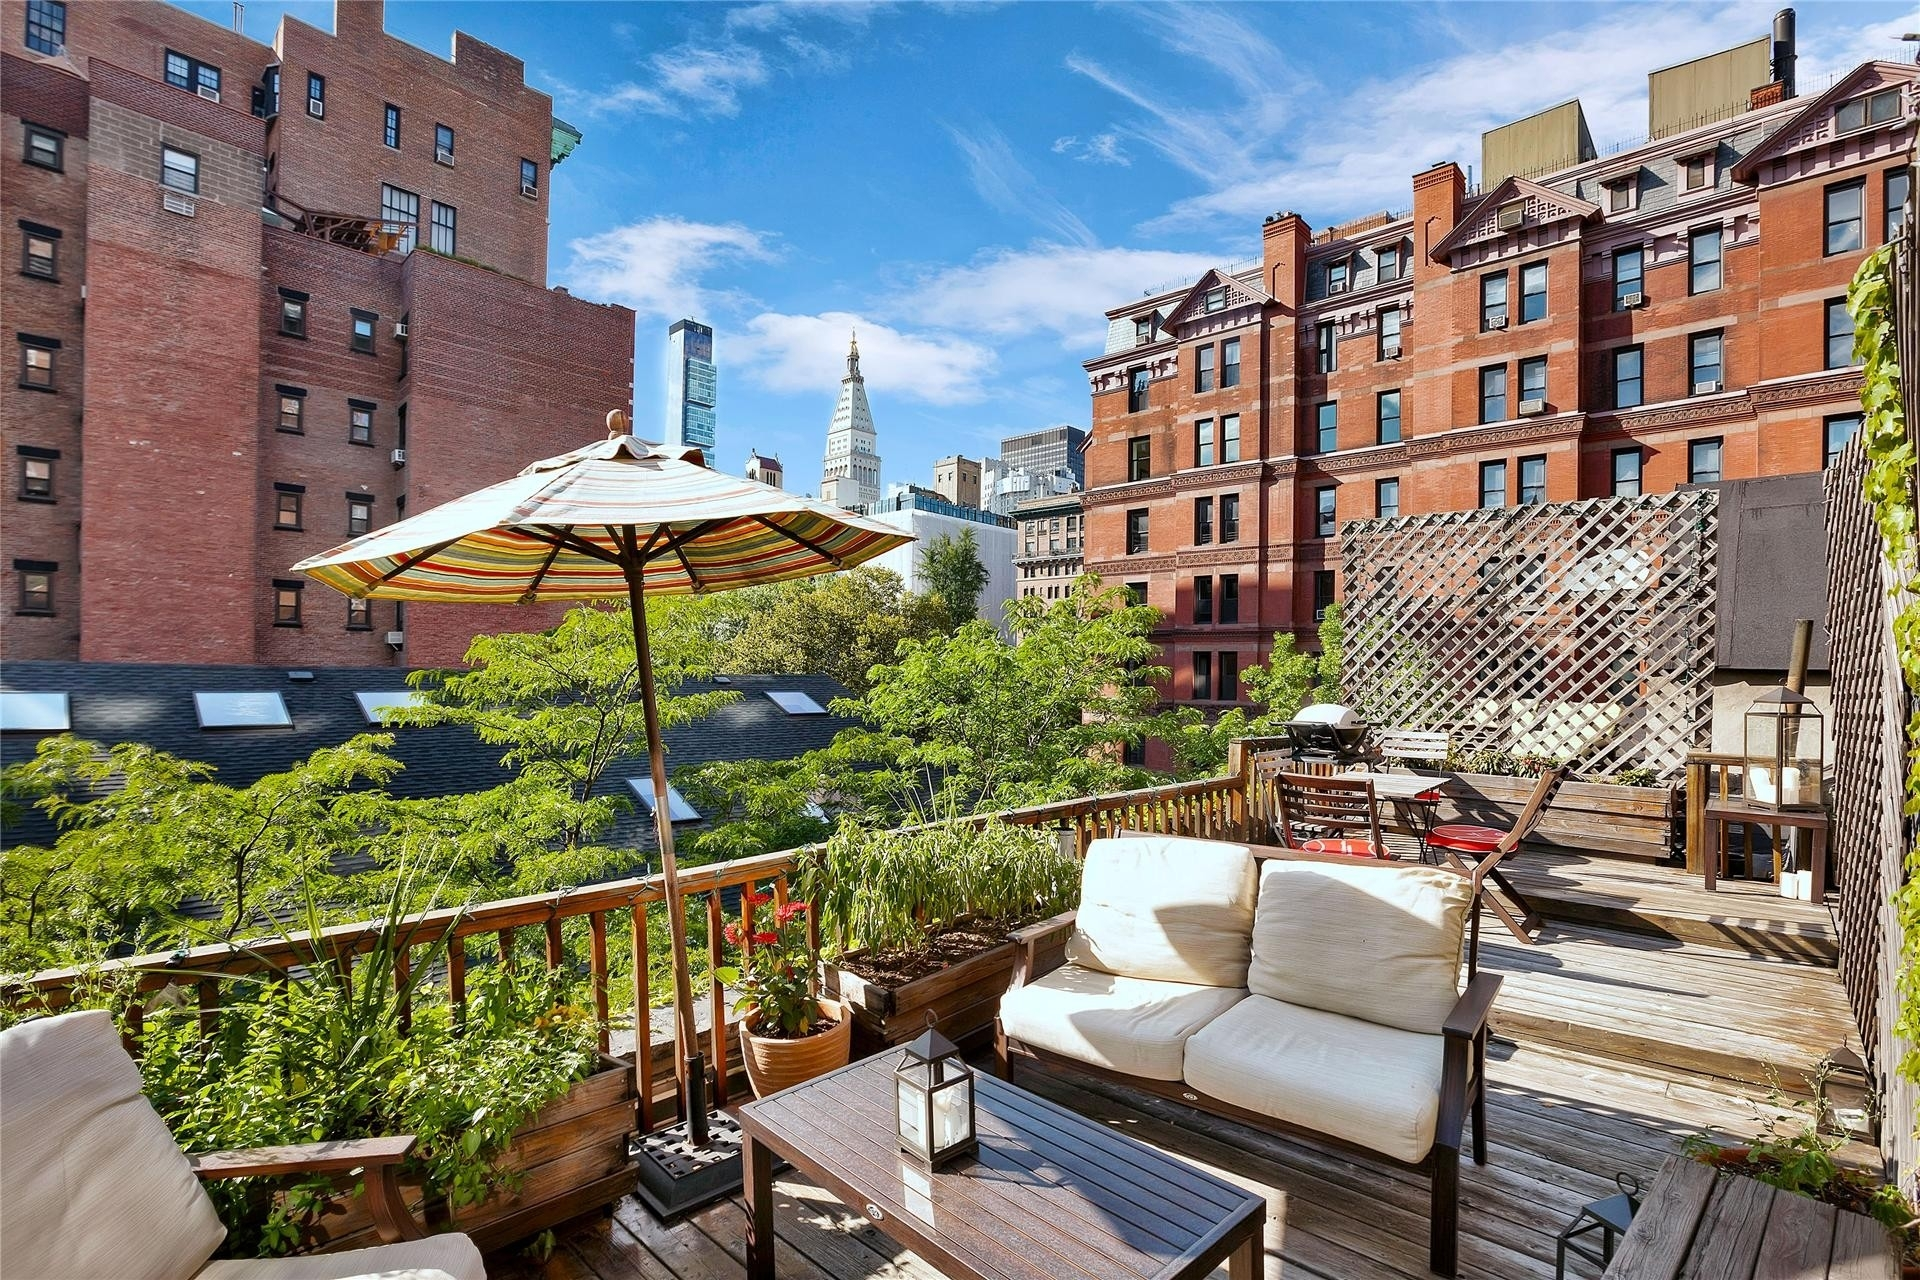 Property at 31 Gramercy Park South, PHB New York